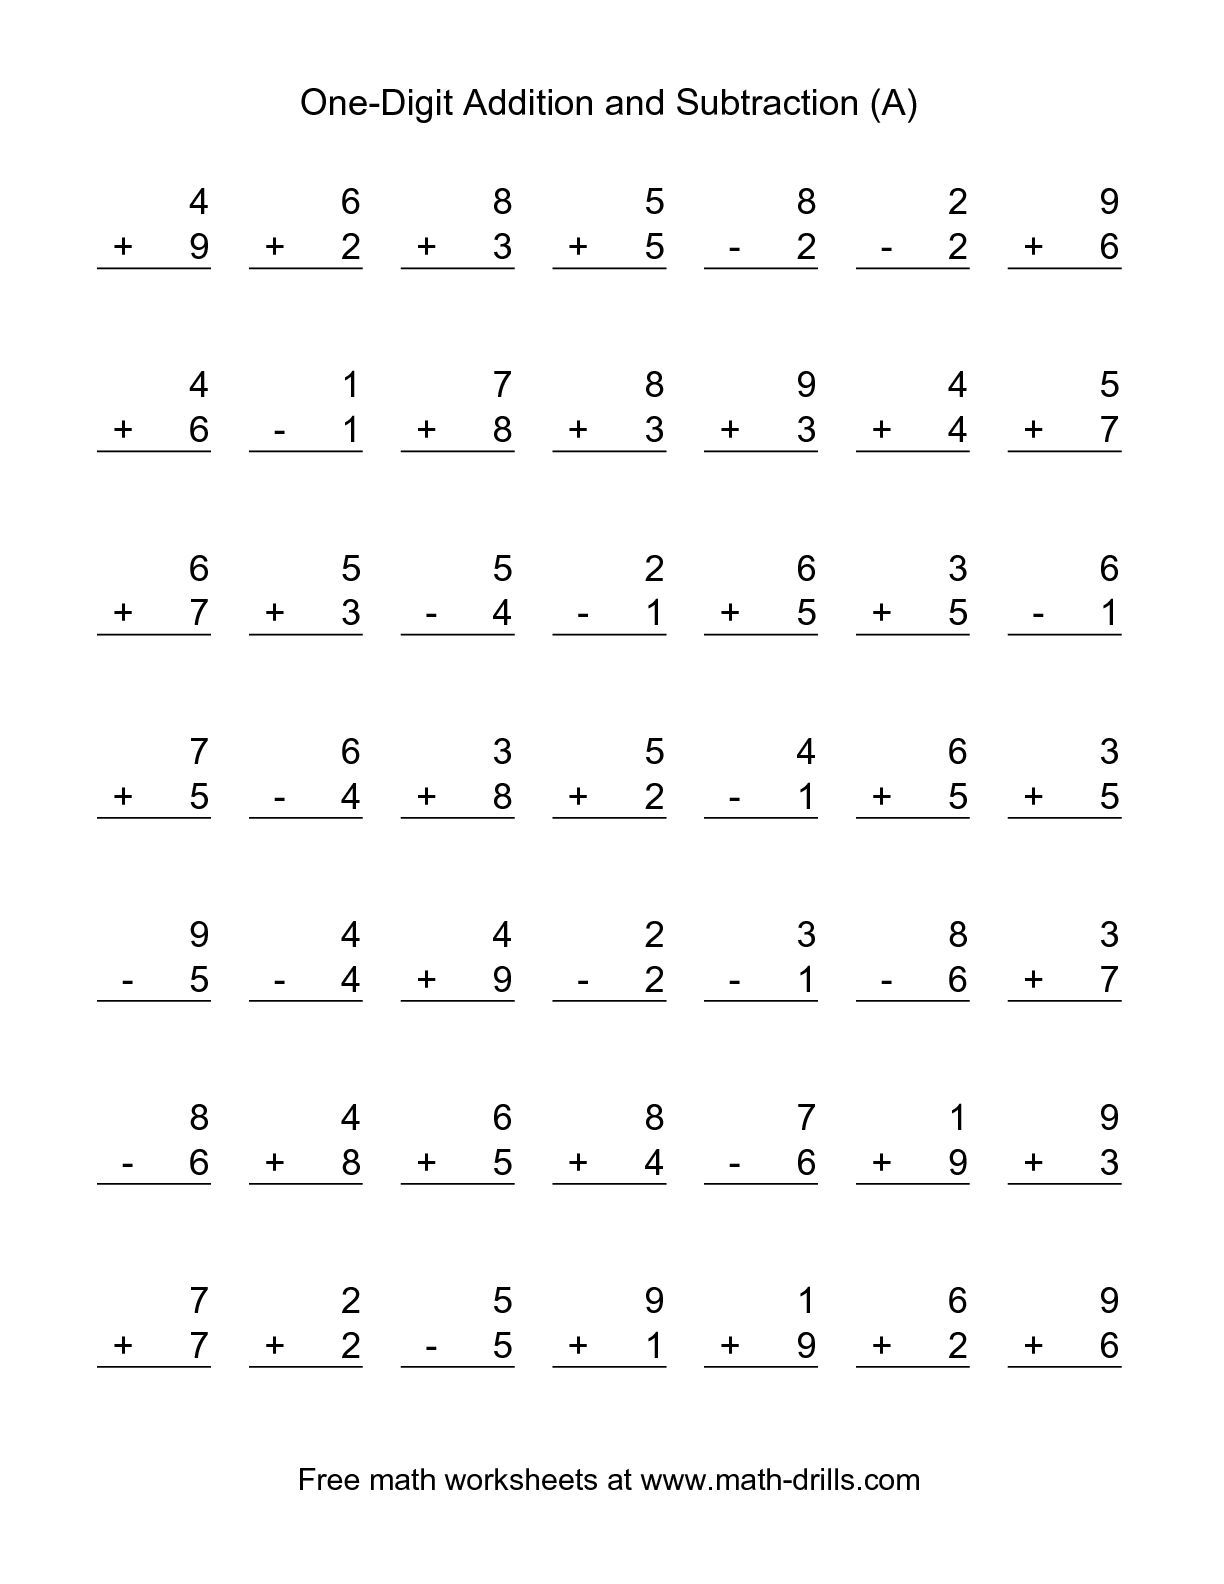 The Single-Digit (A) Math Worksheet From The Combined Addition And - Free Printable Addition And Subtraction Worksheets